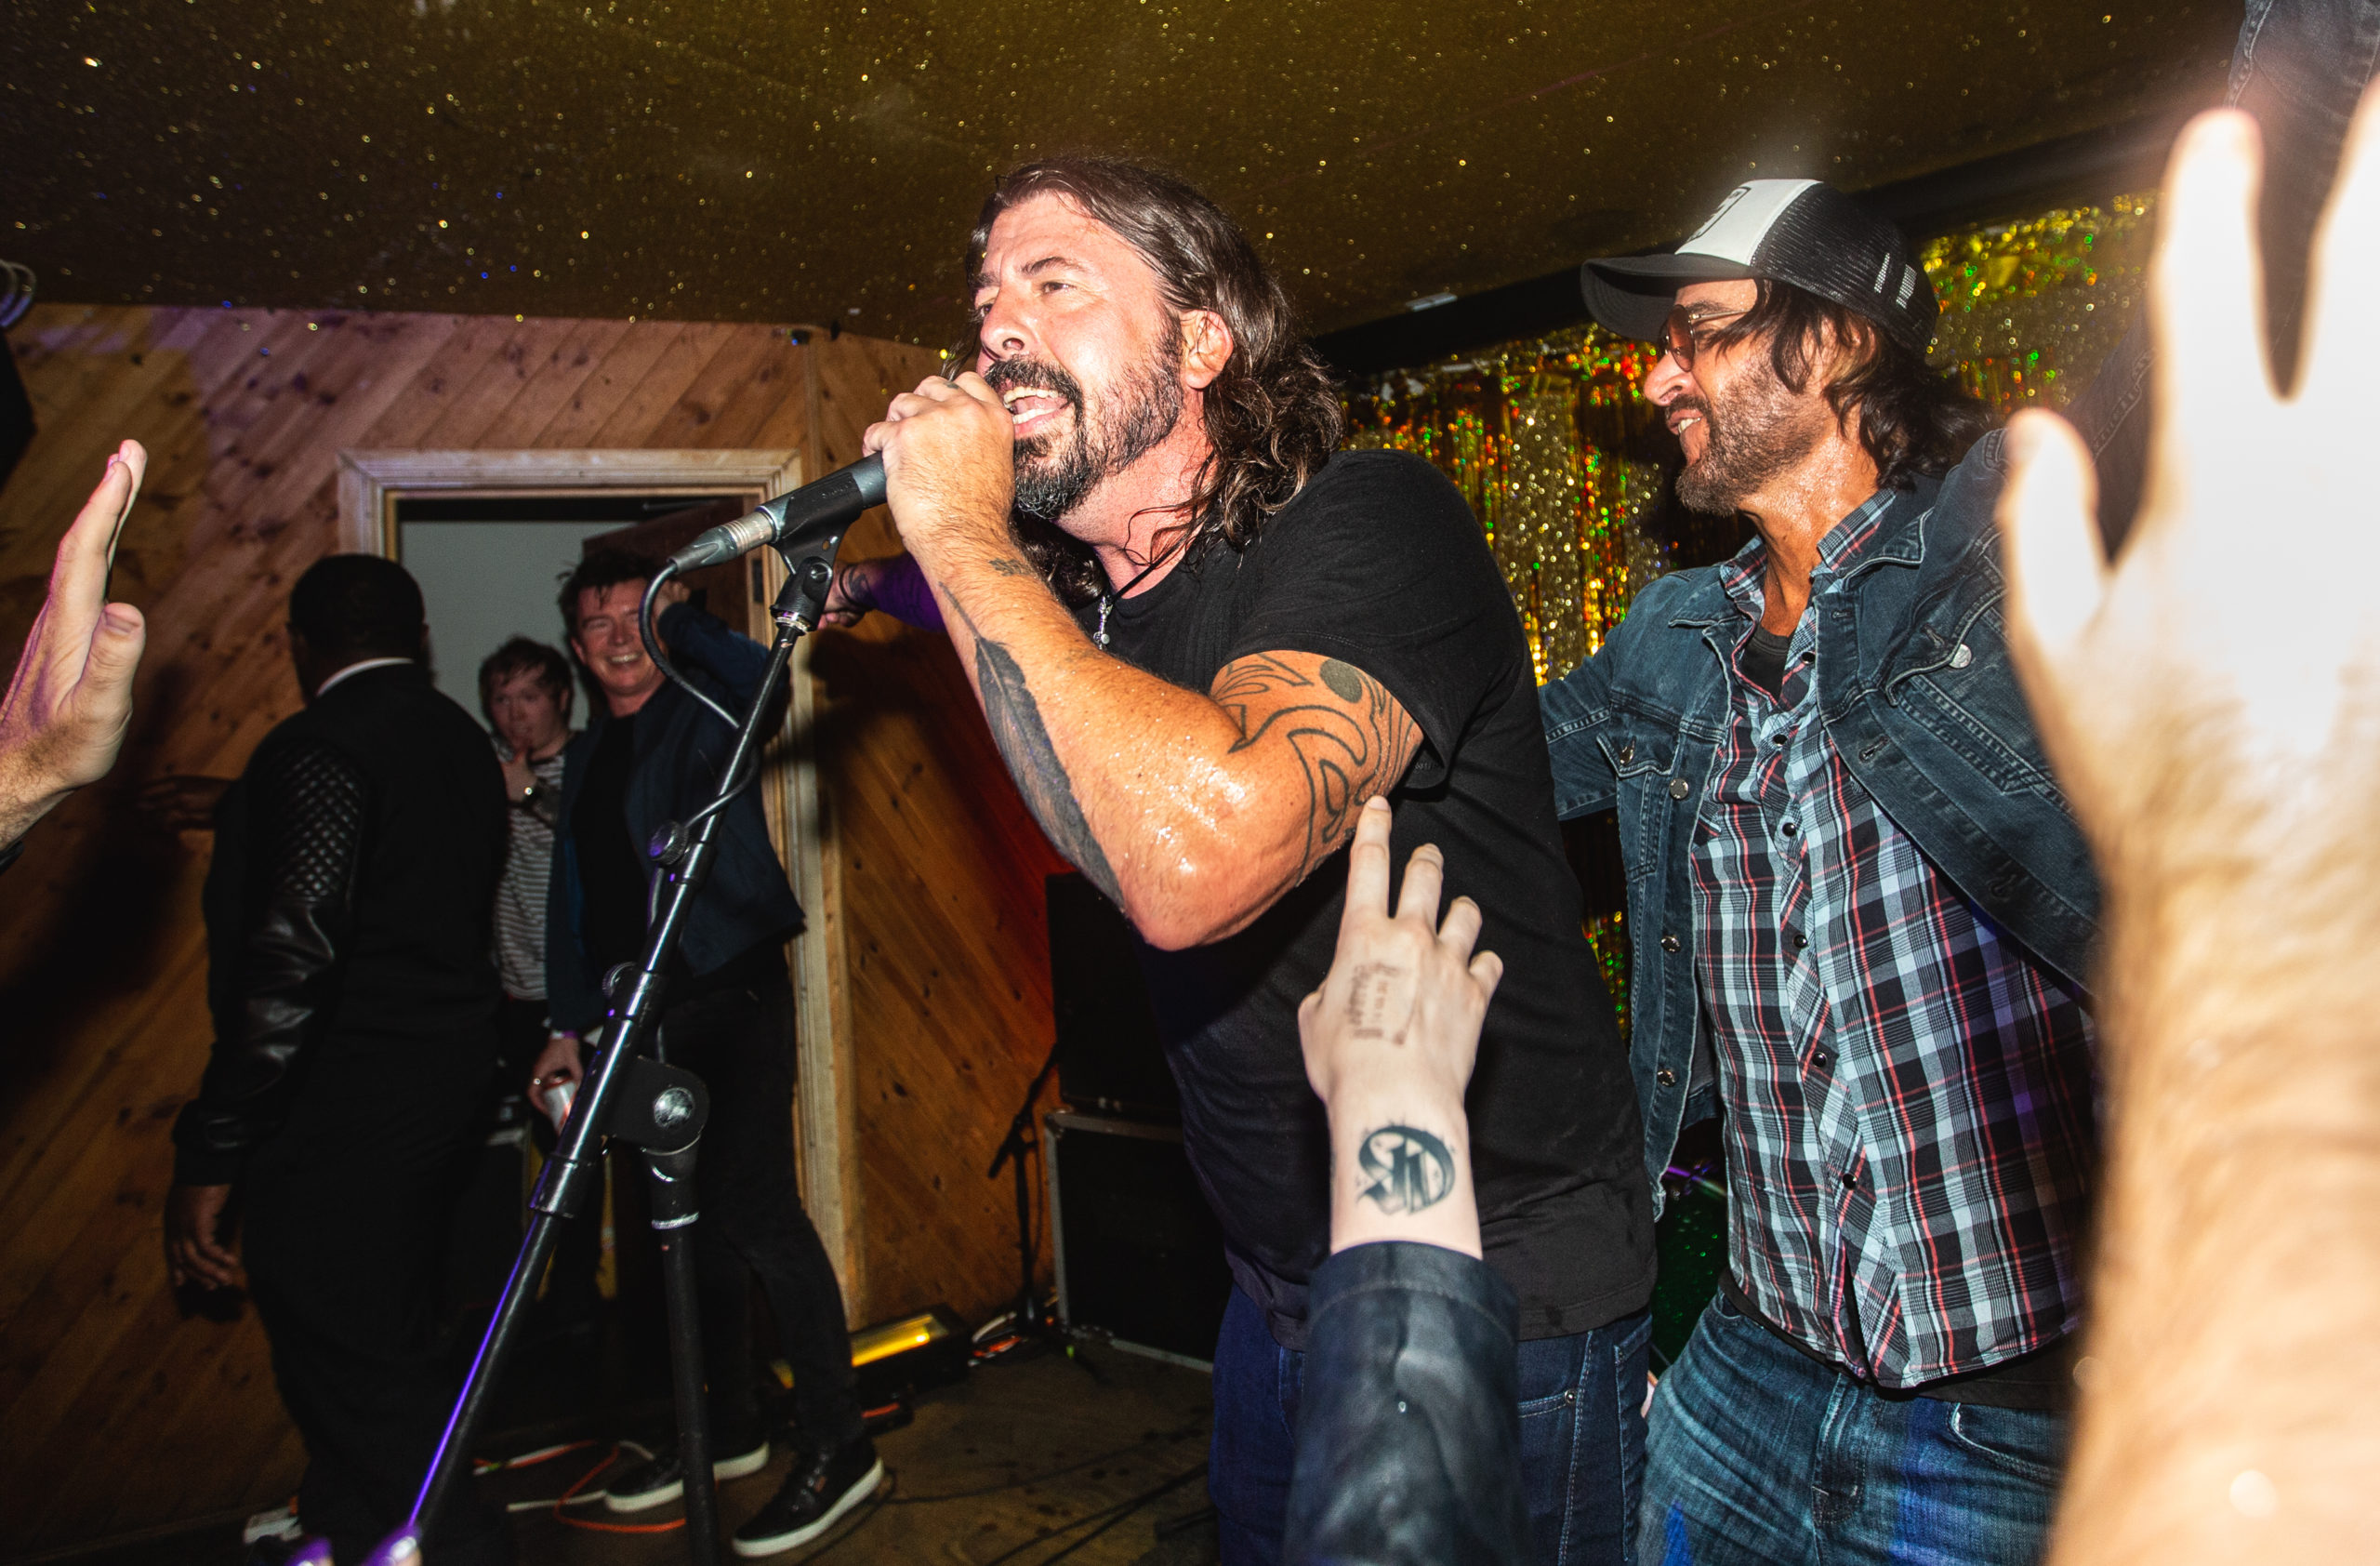 Dave Grohl and Rami at Club NME